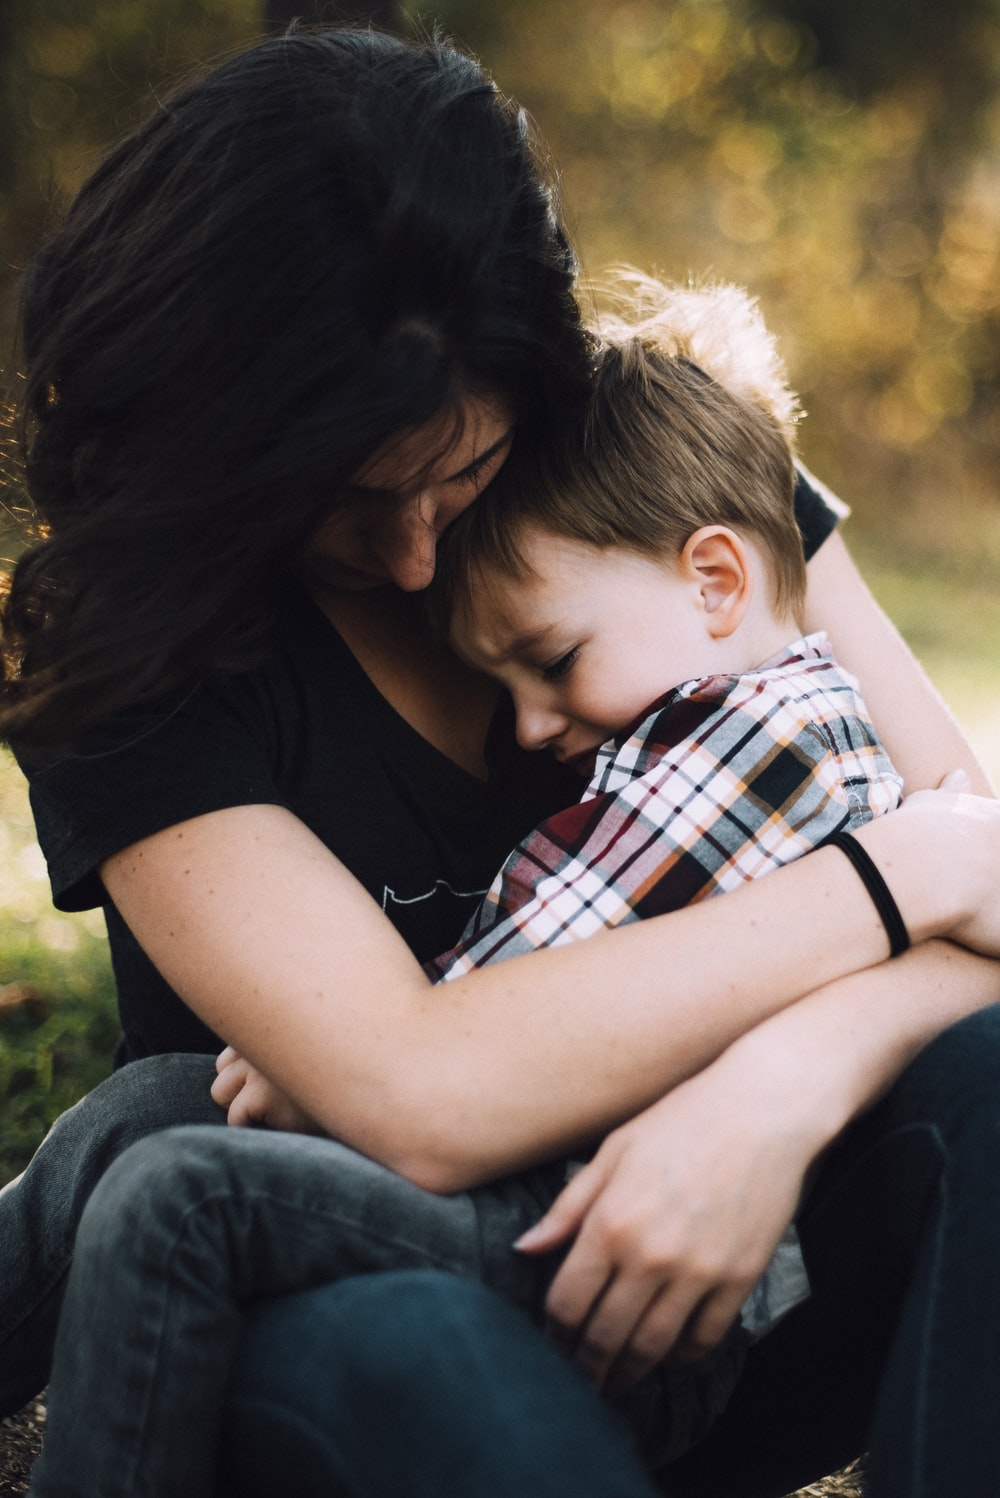 woman hugging boy on her lap